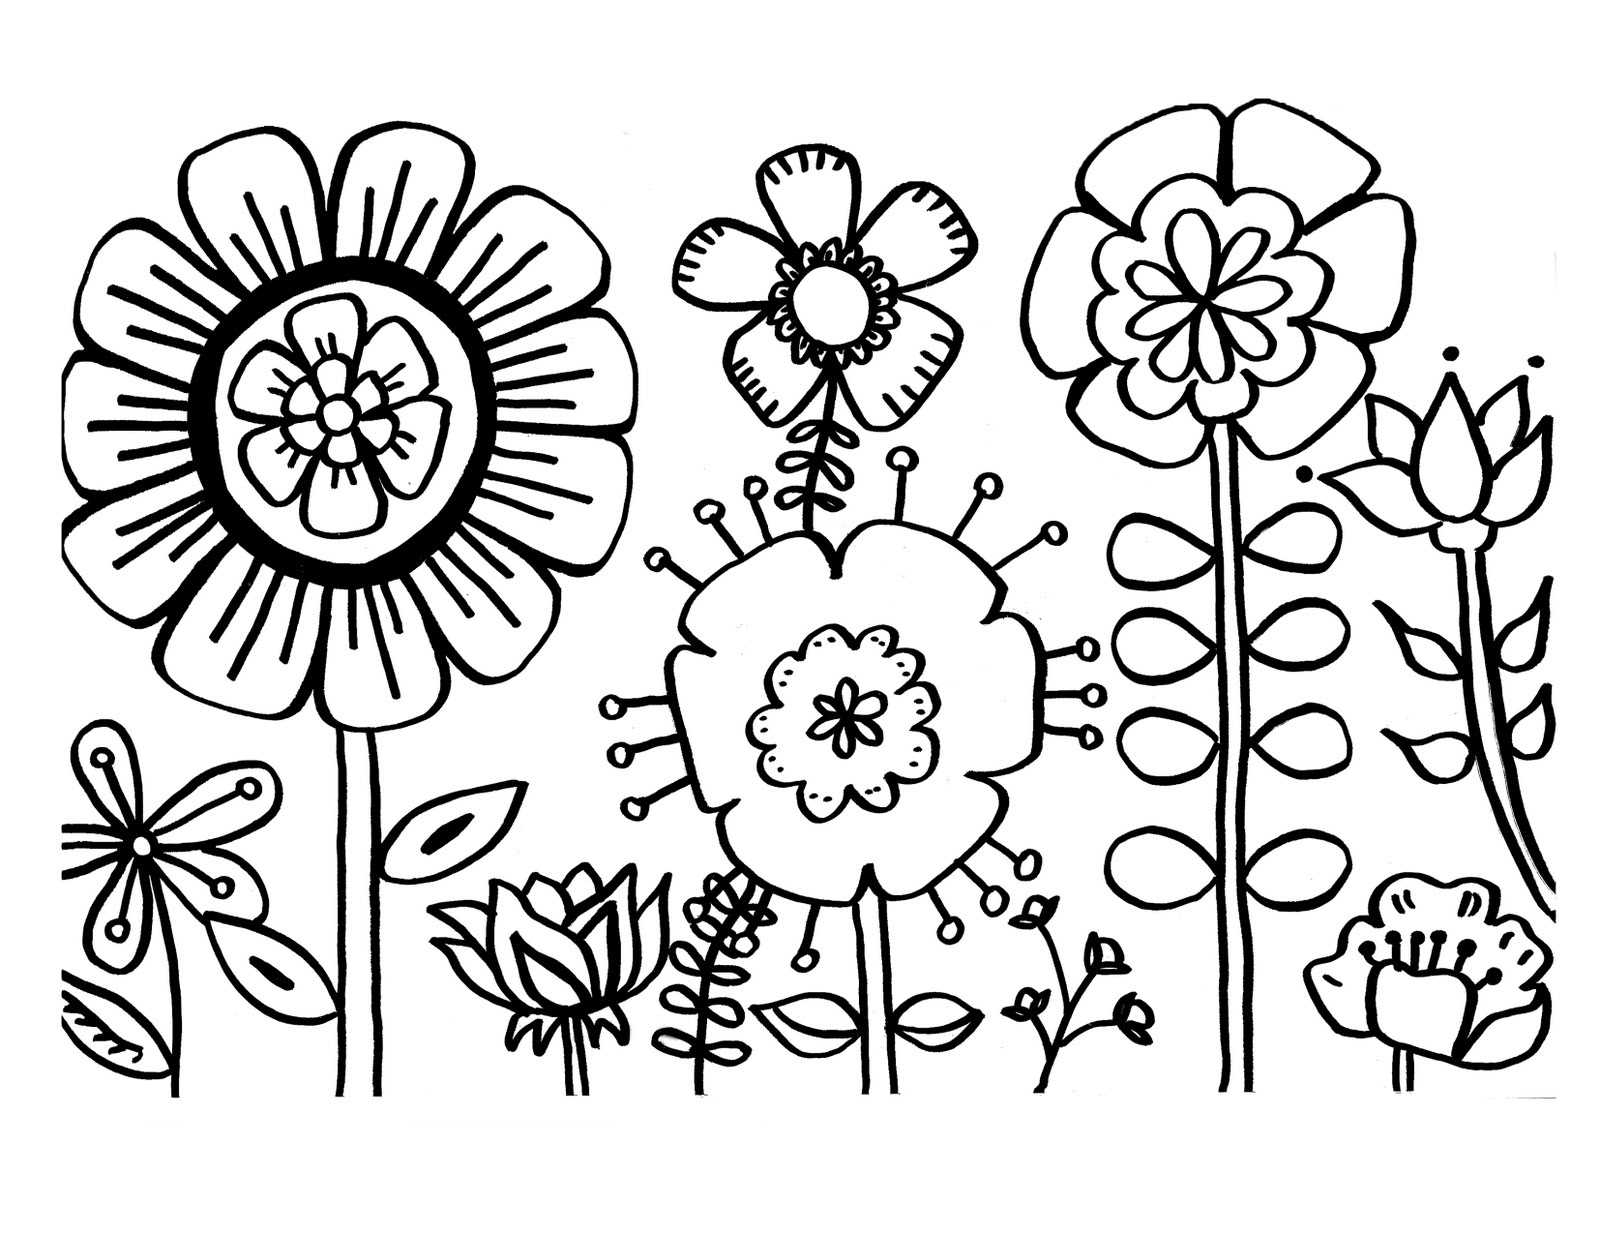 colouring page of flowers free printable flower coloring pages for kids flowers of colouring page